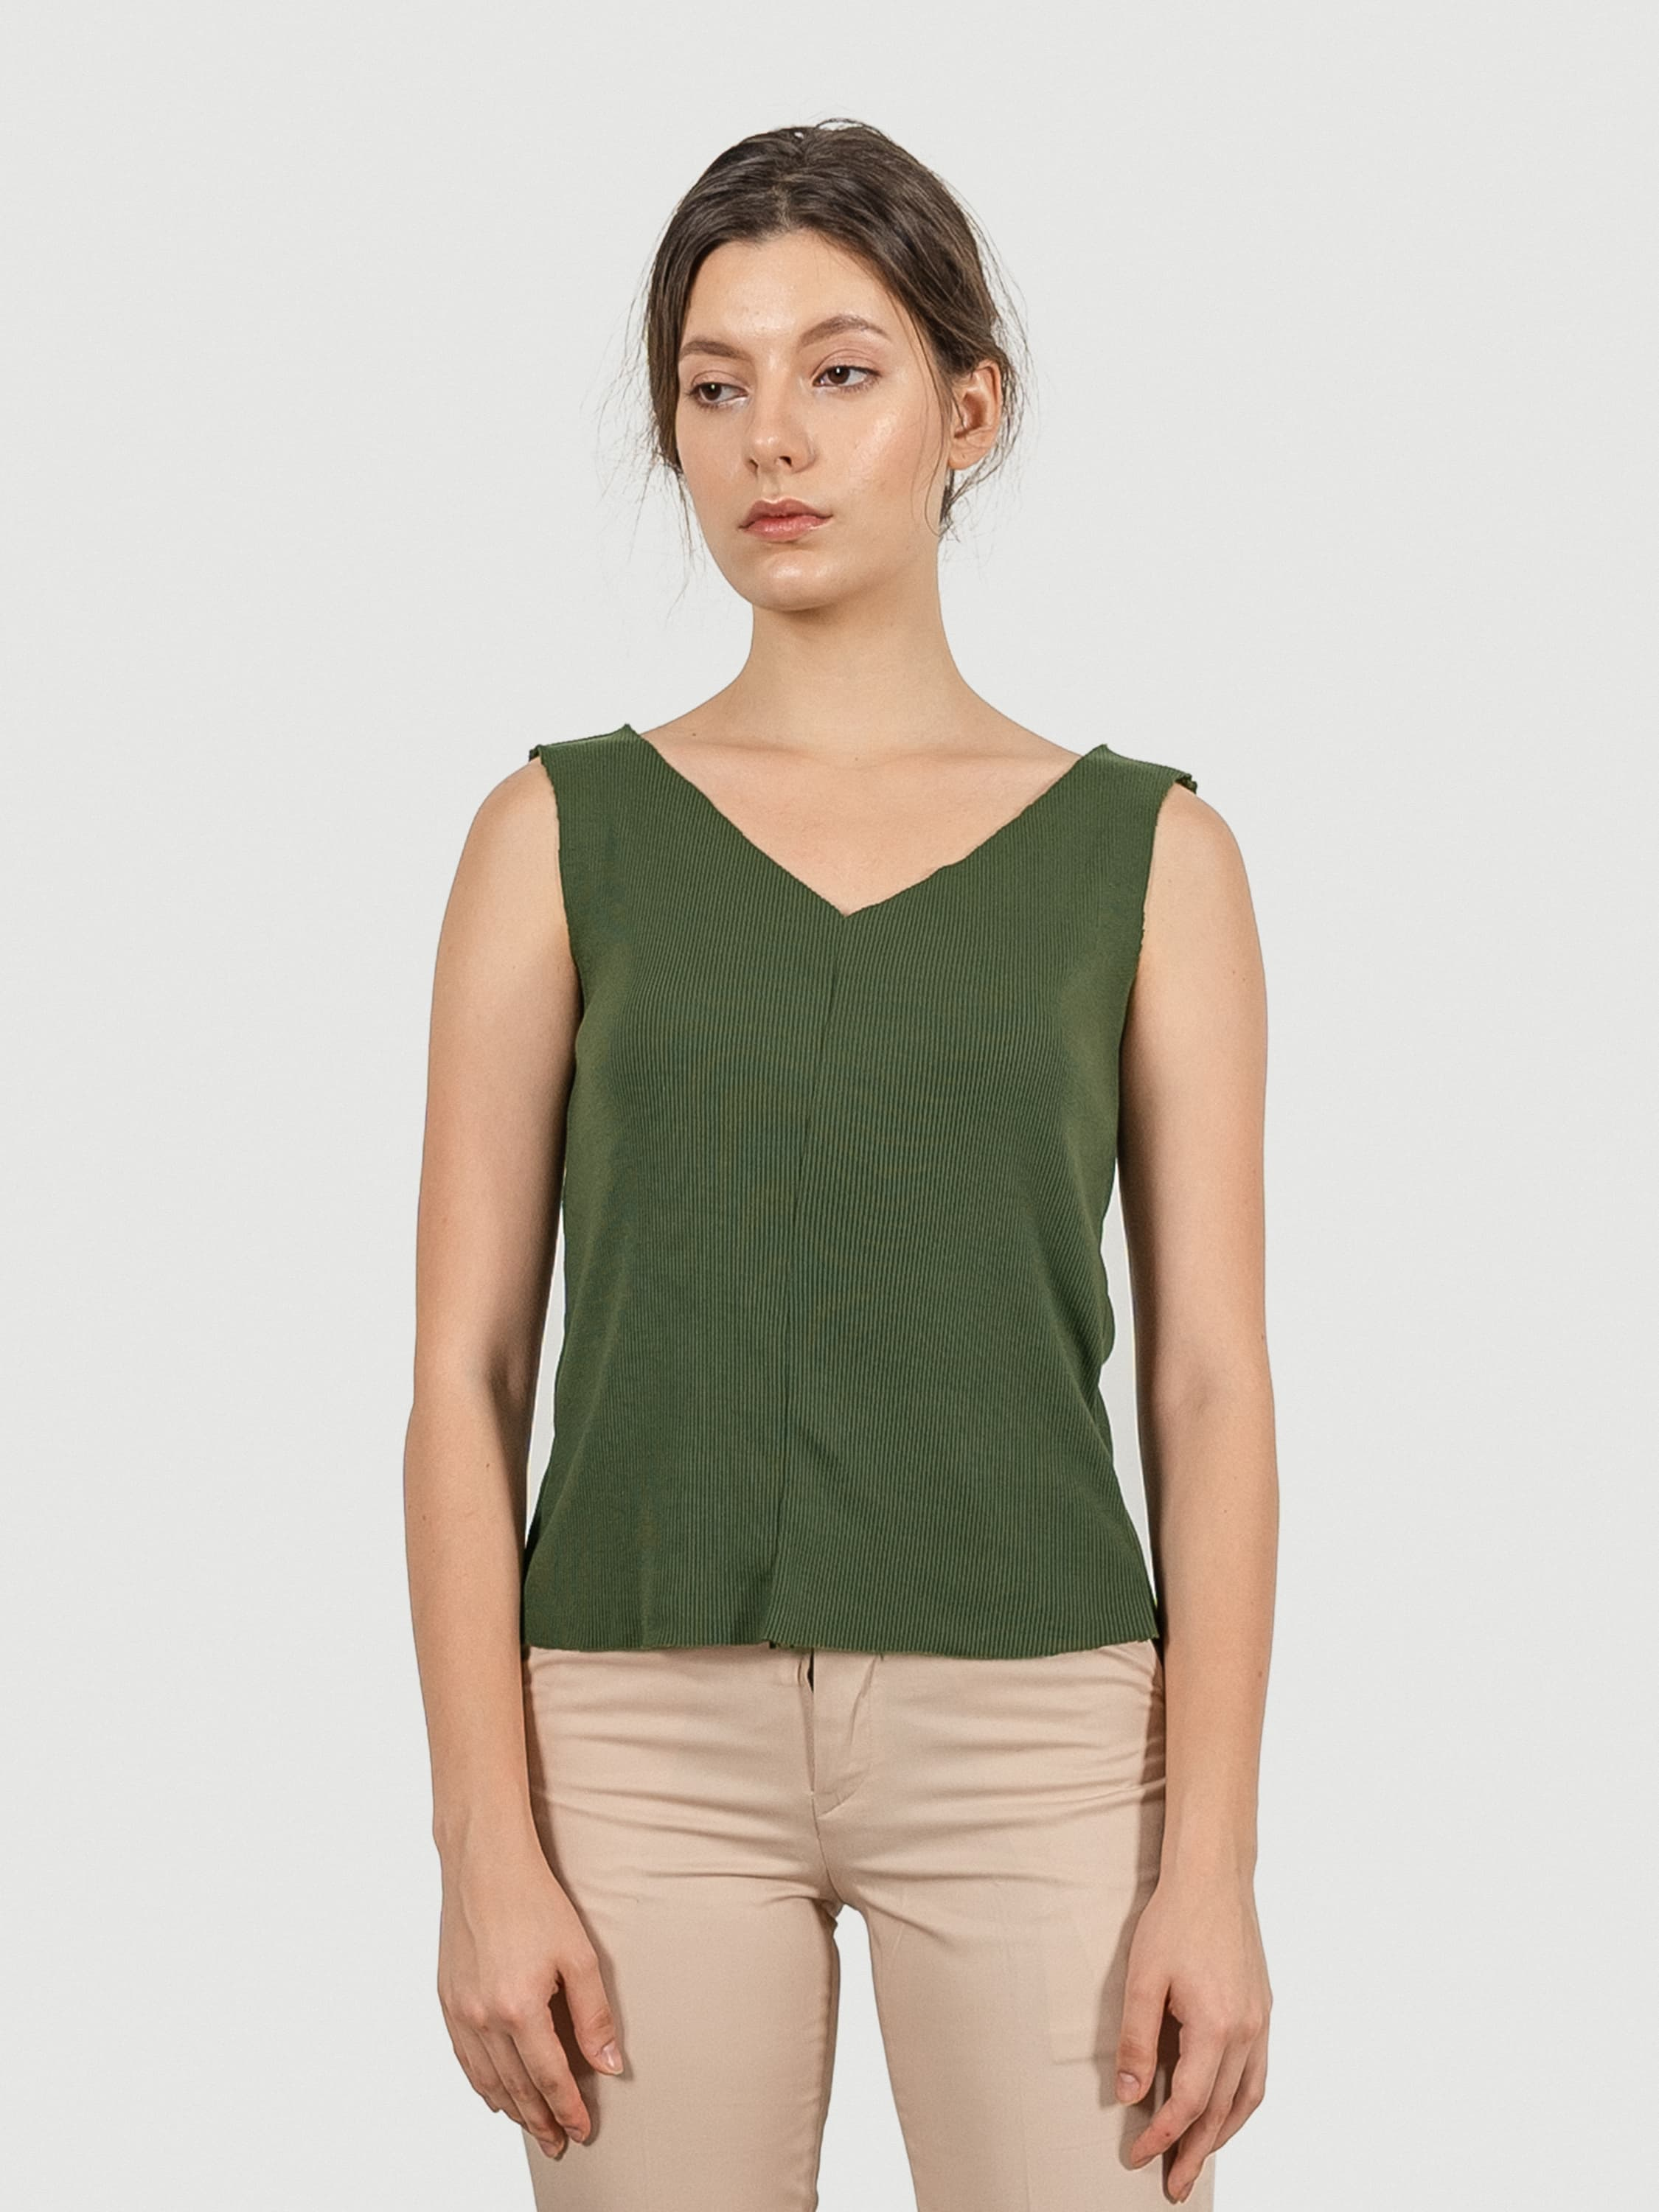 Raw Cut Olive Knit Top